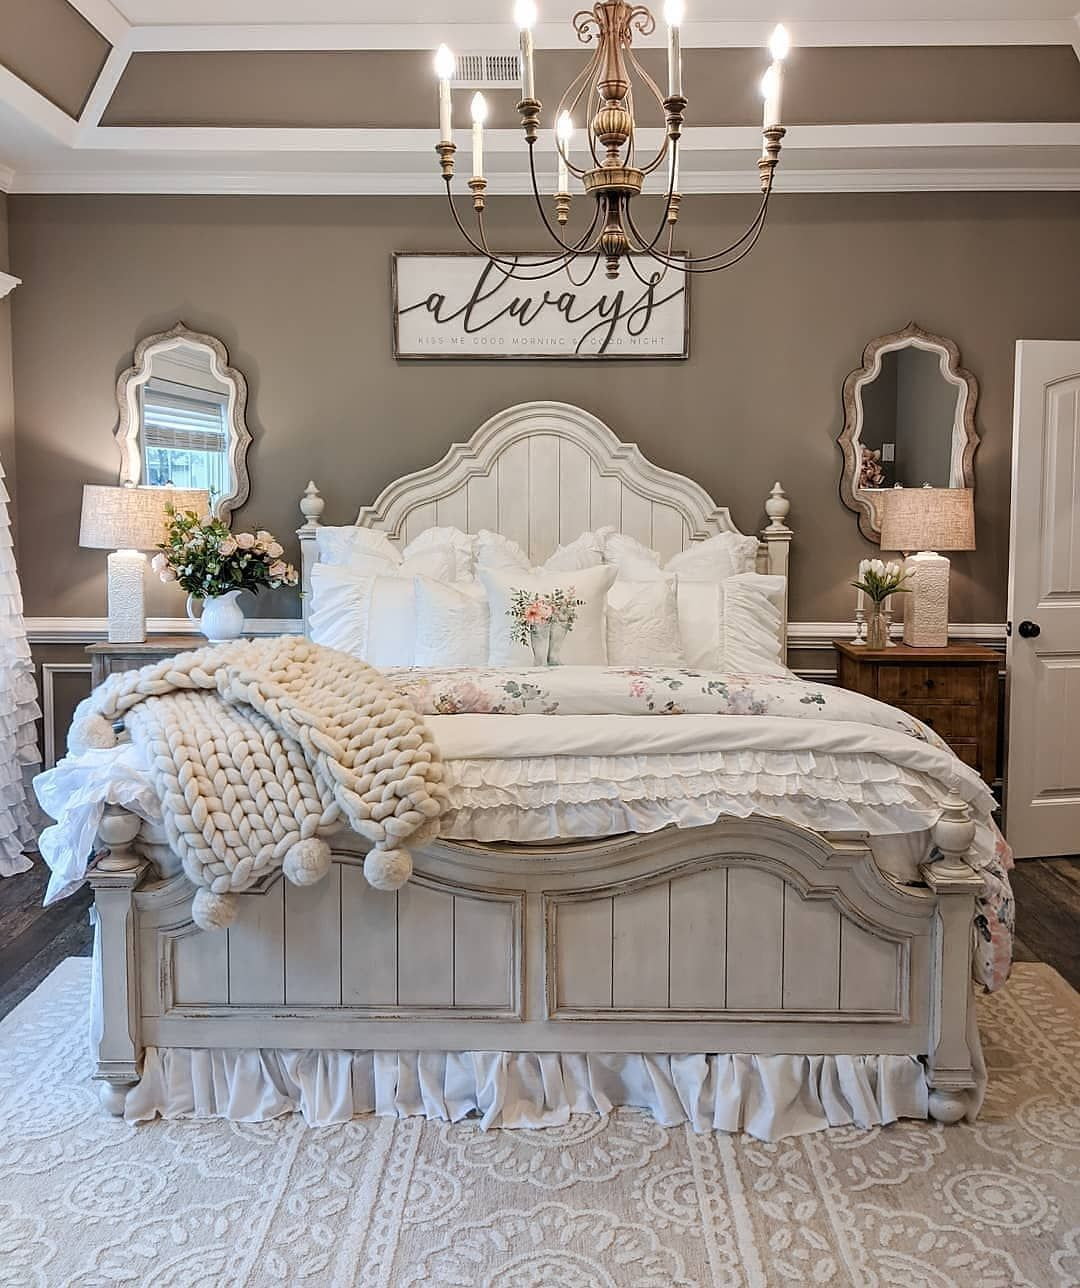 "Farmhouse Homes 🏡 on Instagram: ""How cozy and comfy does this bedroom look? 😍 We could lay in that bed all day! ❤️ TAG a friend who will love this room too! 👇…"""